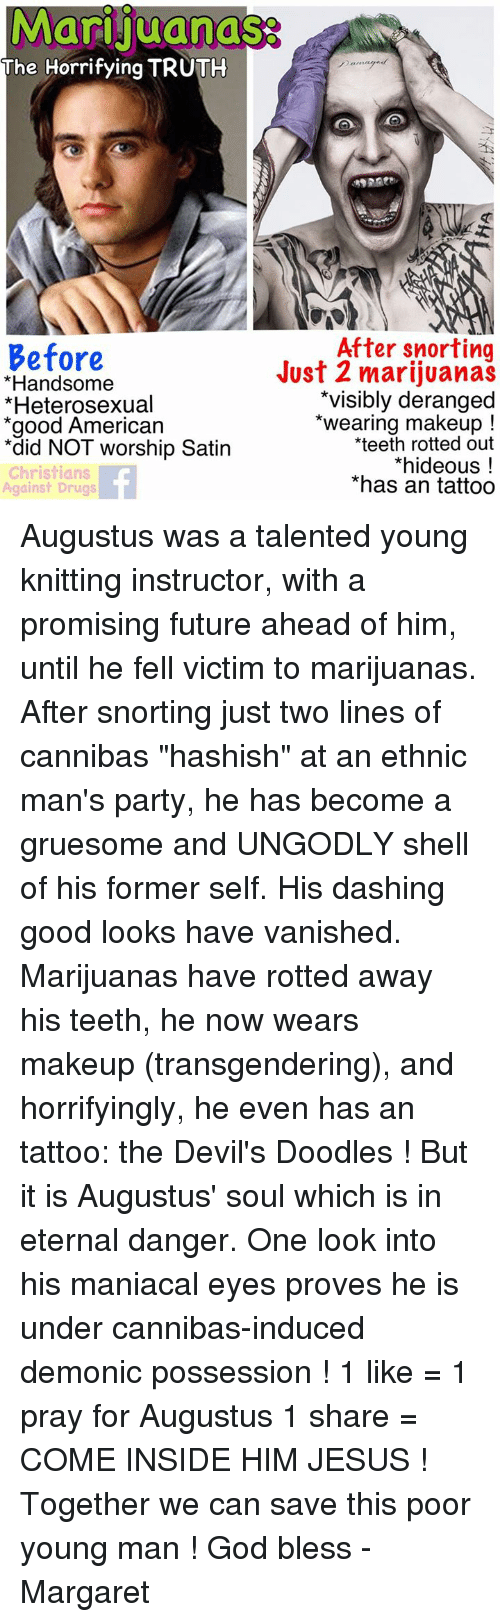 """Drugs, Future, and God: Marijuanas  The Horrifying TRUTH  After snorting  Before  *Handsome  *Heterosexual  *good American  *did NOT worship Satin  Christians  Against Drugs  Just 2 marijuanas  *visibly deranged  *wearing makeup!  teeth rotted out  *hideous!  *has an tattoo Augustus was a talented young knitting instructor, with a promising future ahead of him, until he fell victim to marijuanas.  After snorting just two lines of cannibas """"hashish"""" at an ethnic man's party, he has become a gruesome and UNGODLY shell of his former self.  His dashing good looks have vanished. Marijuanas have rotted away his teeth, he now wears makeup (transgendering), and horrifyingly, he even has an tattoo: the Devil's Doodles !   But it is Augustus' soul which is in eternal danger. One look into his maniacal eyes proves he is under cannibas-induced demonic possession !  1 like = 1 pray for Augustus   1 share = COME INSIDE HIM JESUS !  Together we can save this poor young man ! God bless - Margaret"""